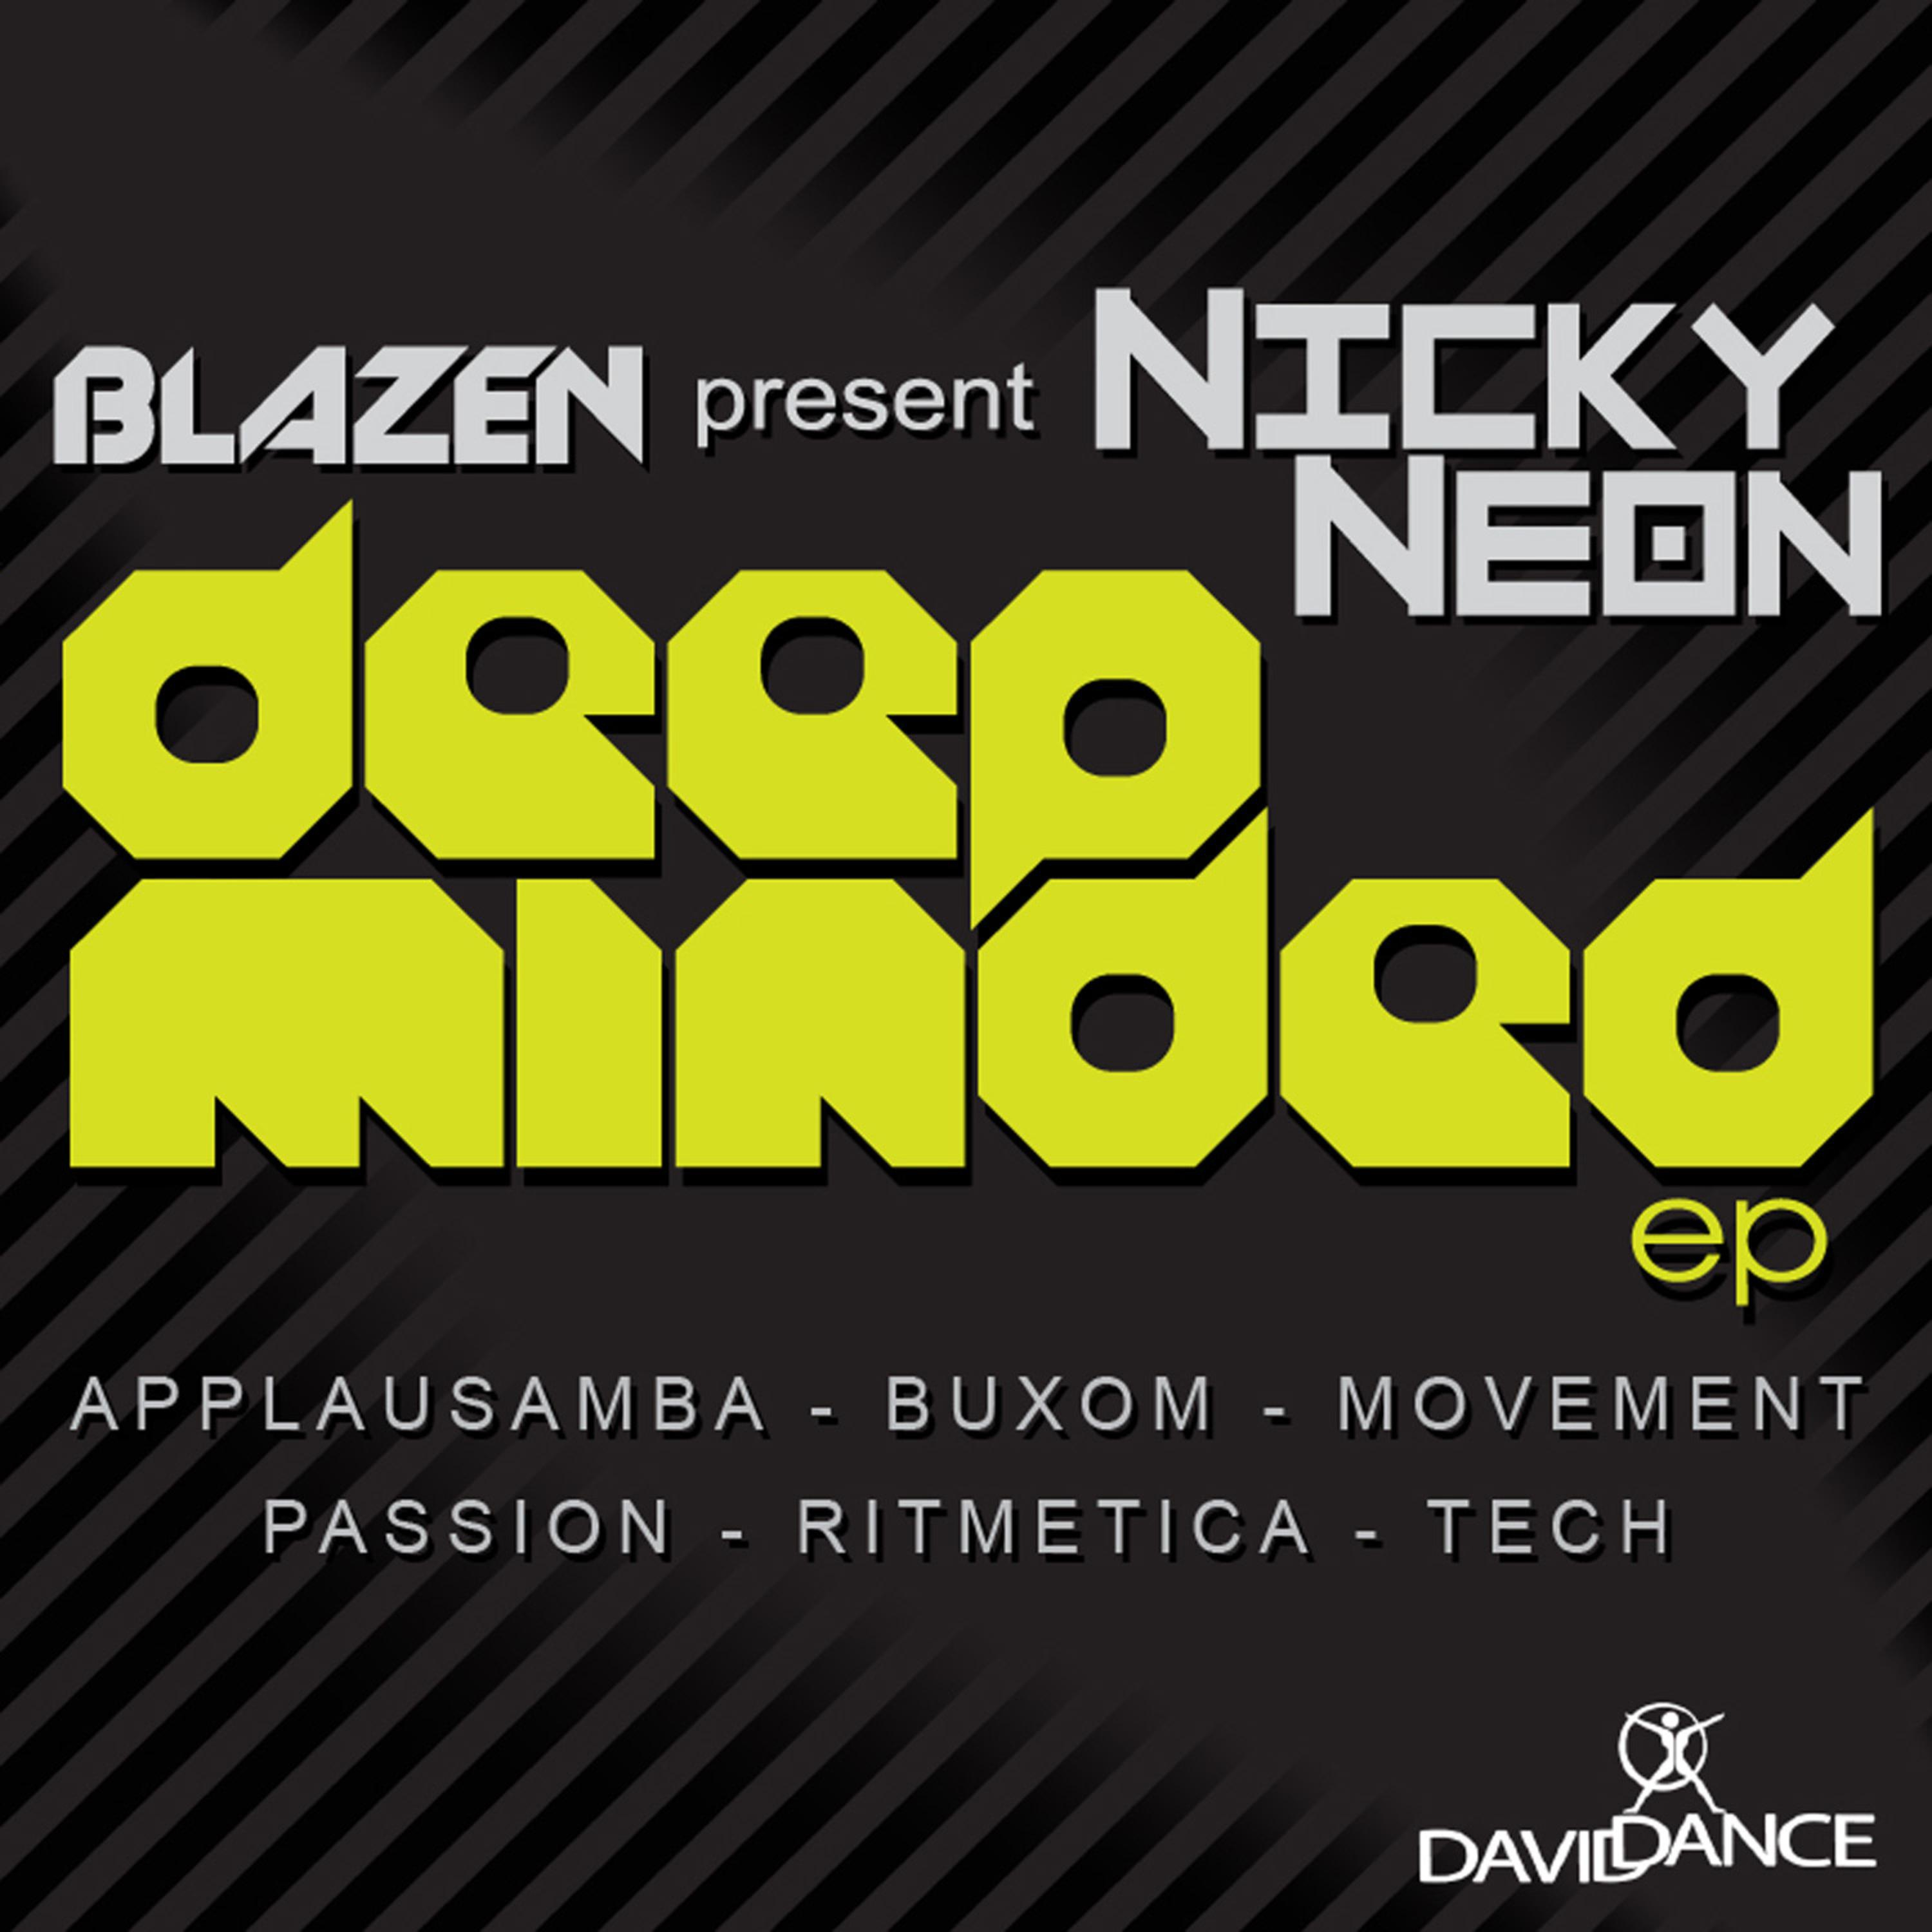 Nicky Neon - Ritmetica (Original mix)